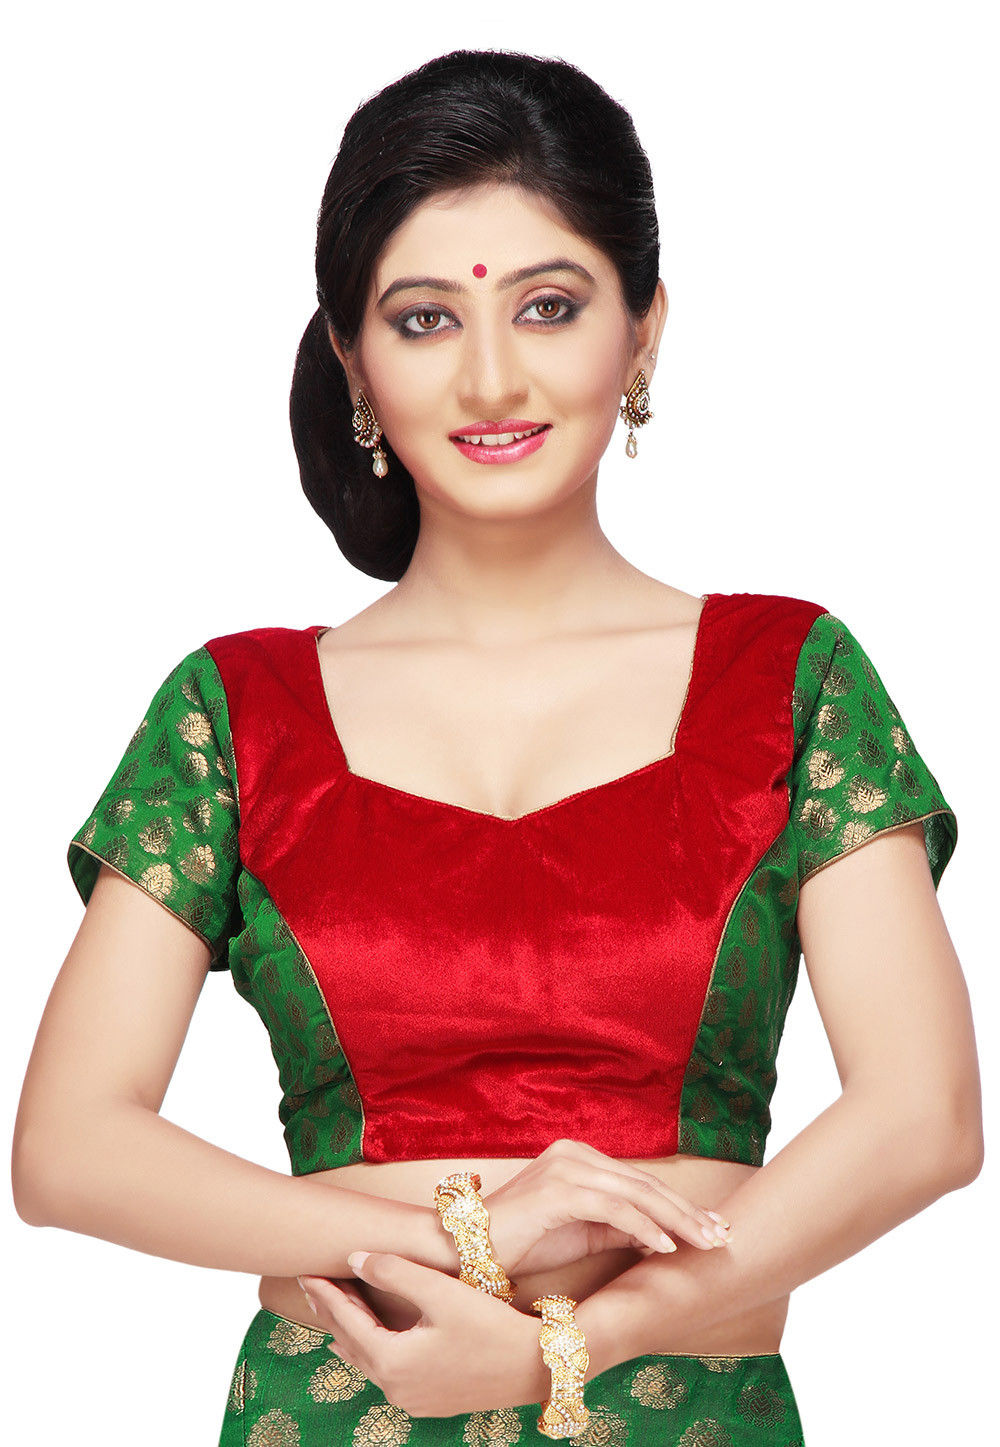 Velvet and Chanderi Silk Brocade Blouse in Green and Red